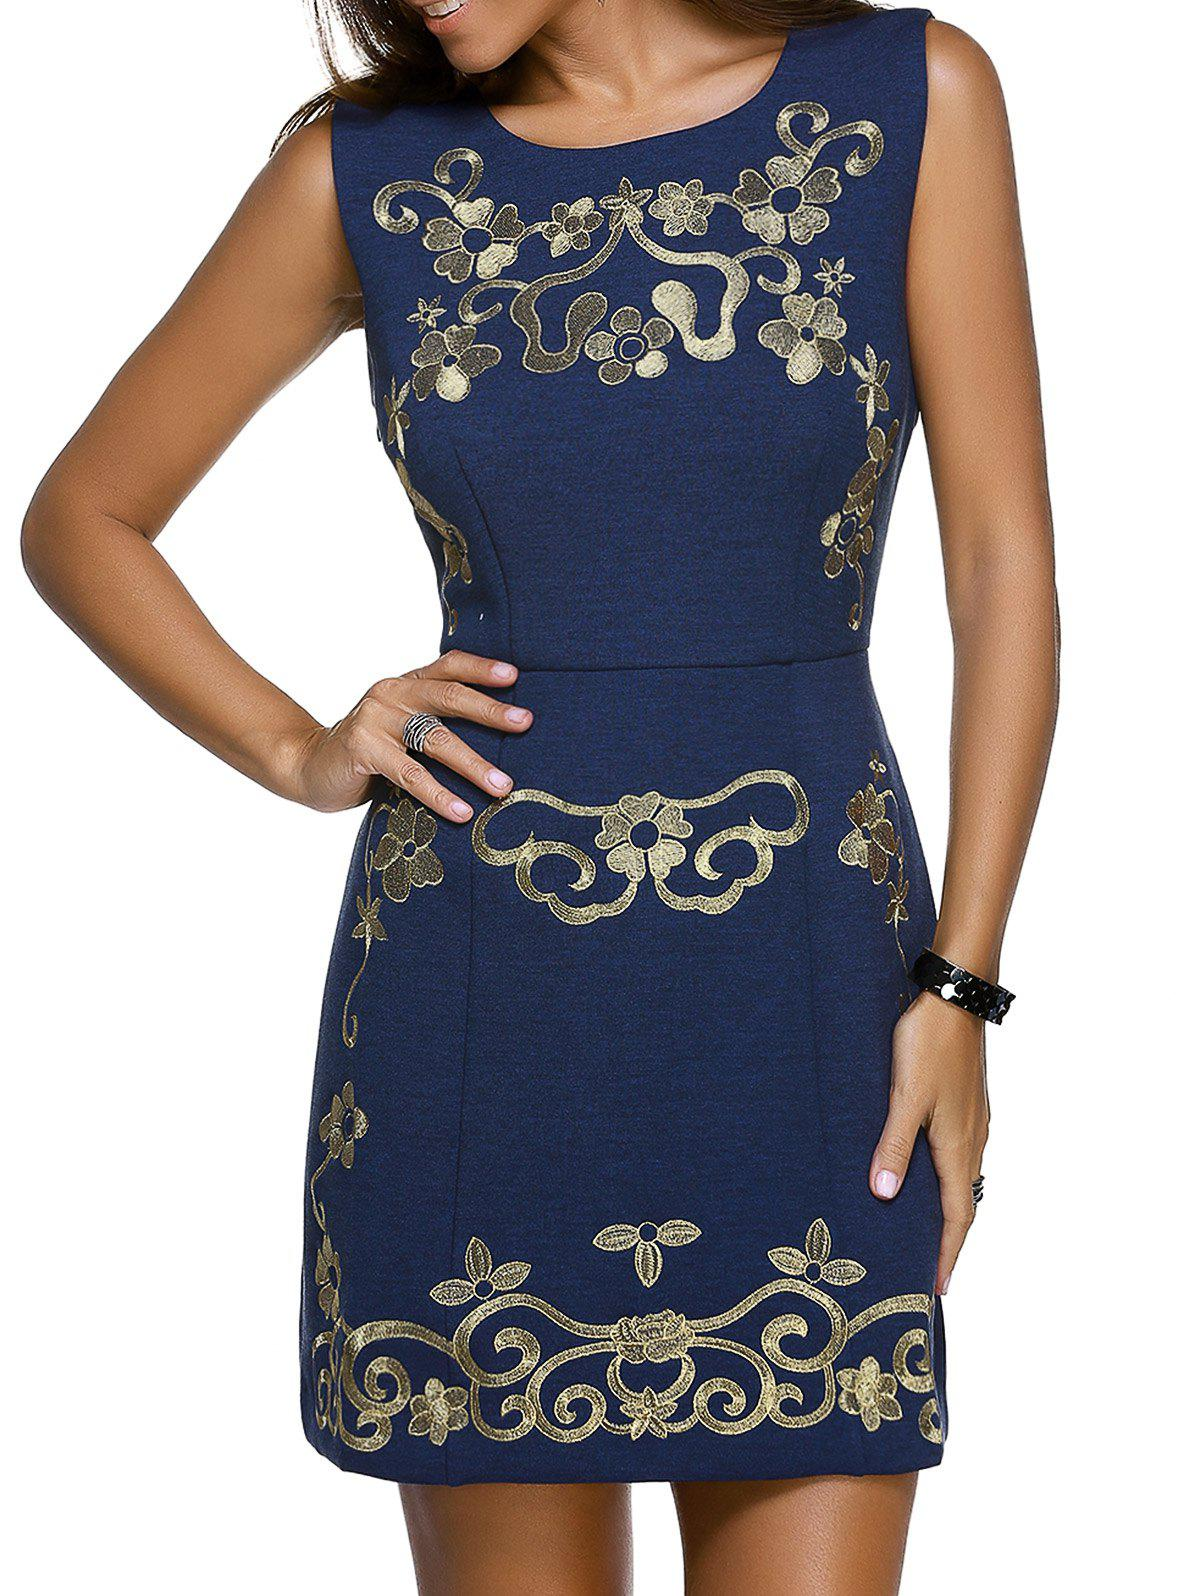 Trendy Sleeveless Round Neck Skinny Slimming Floral Embroidery Women's Dress - PURPLISH BLUE L